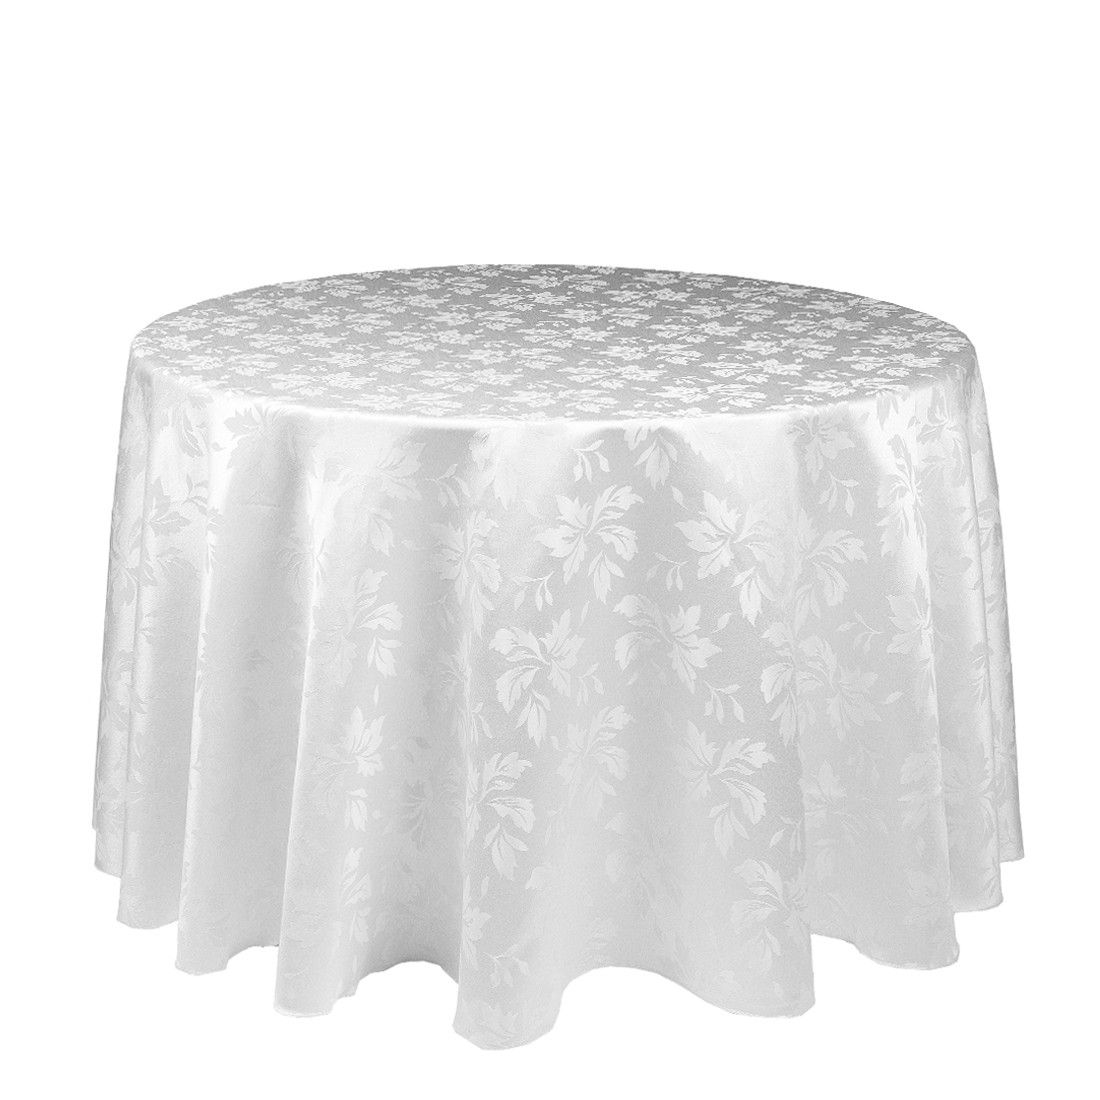 Good White Round Table Covers Starrkingschool